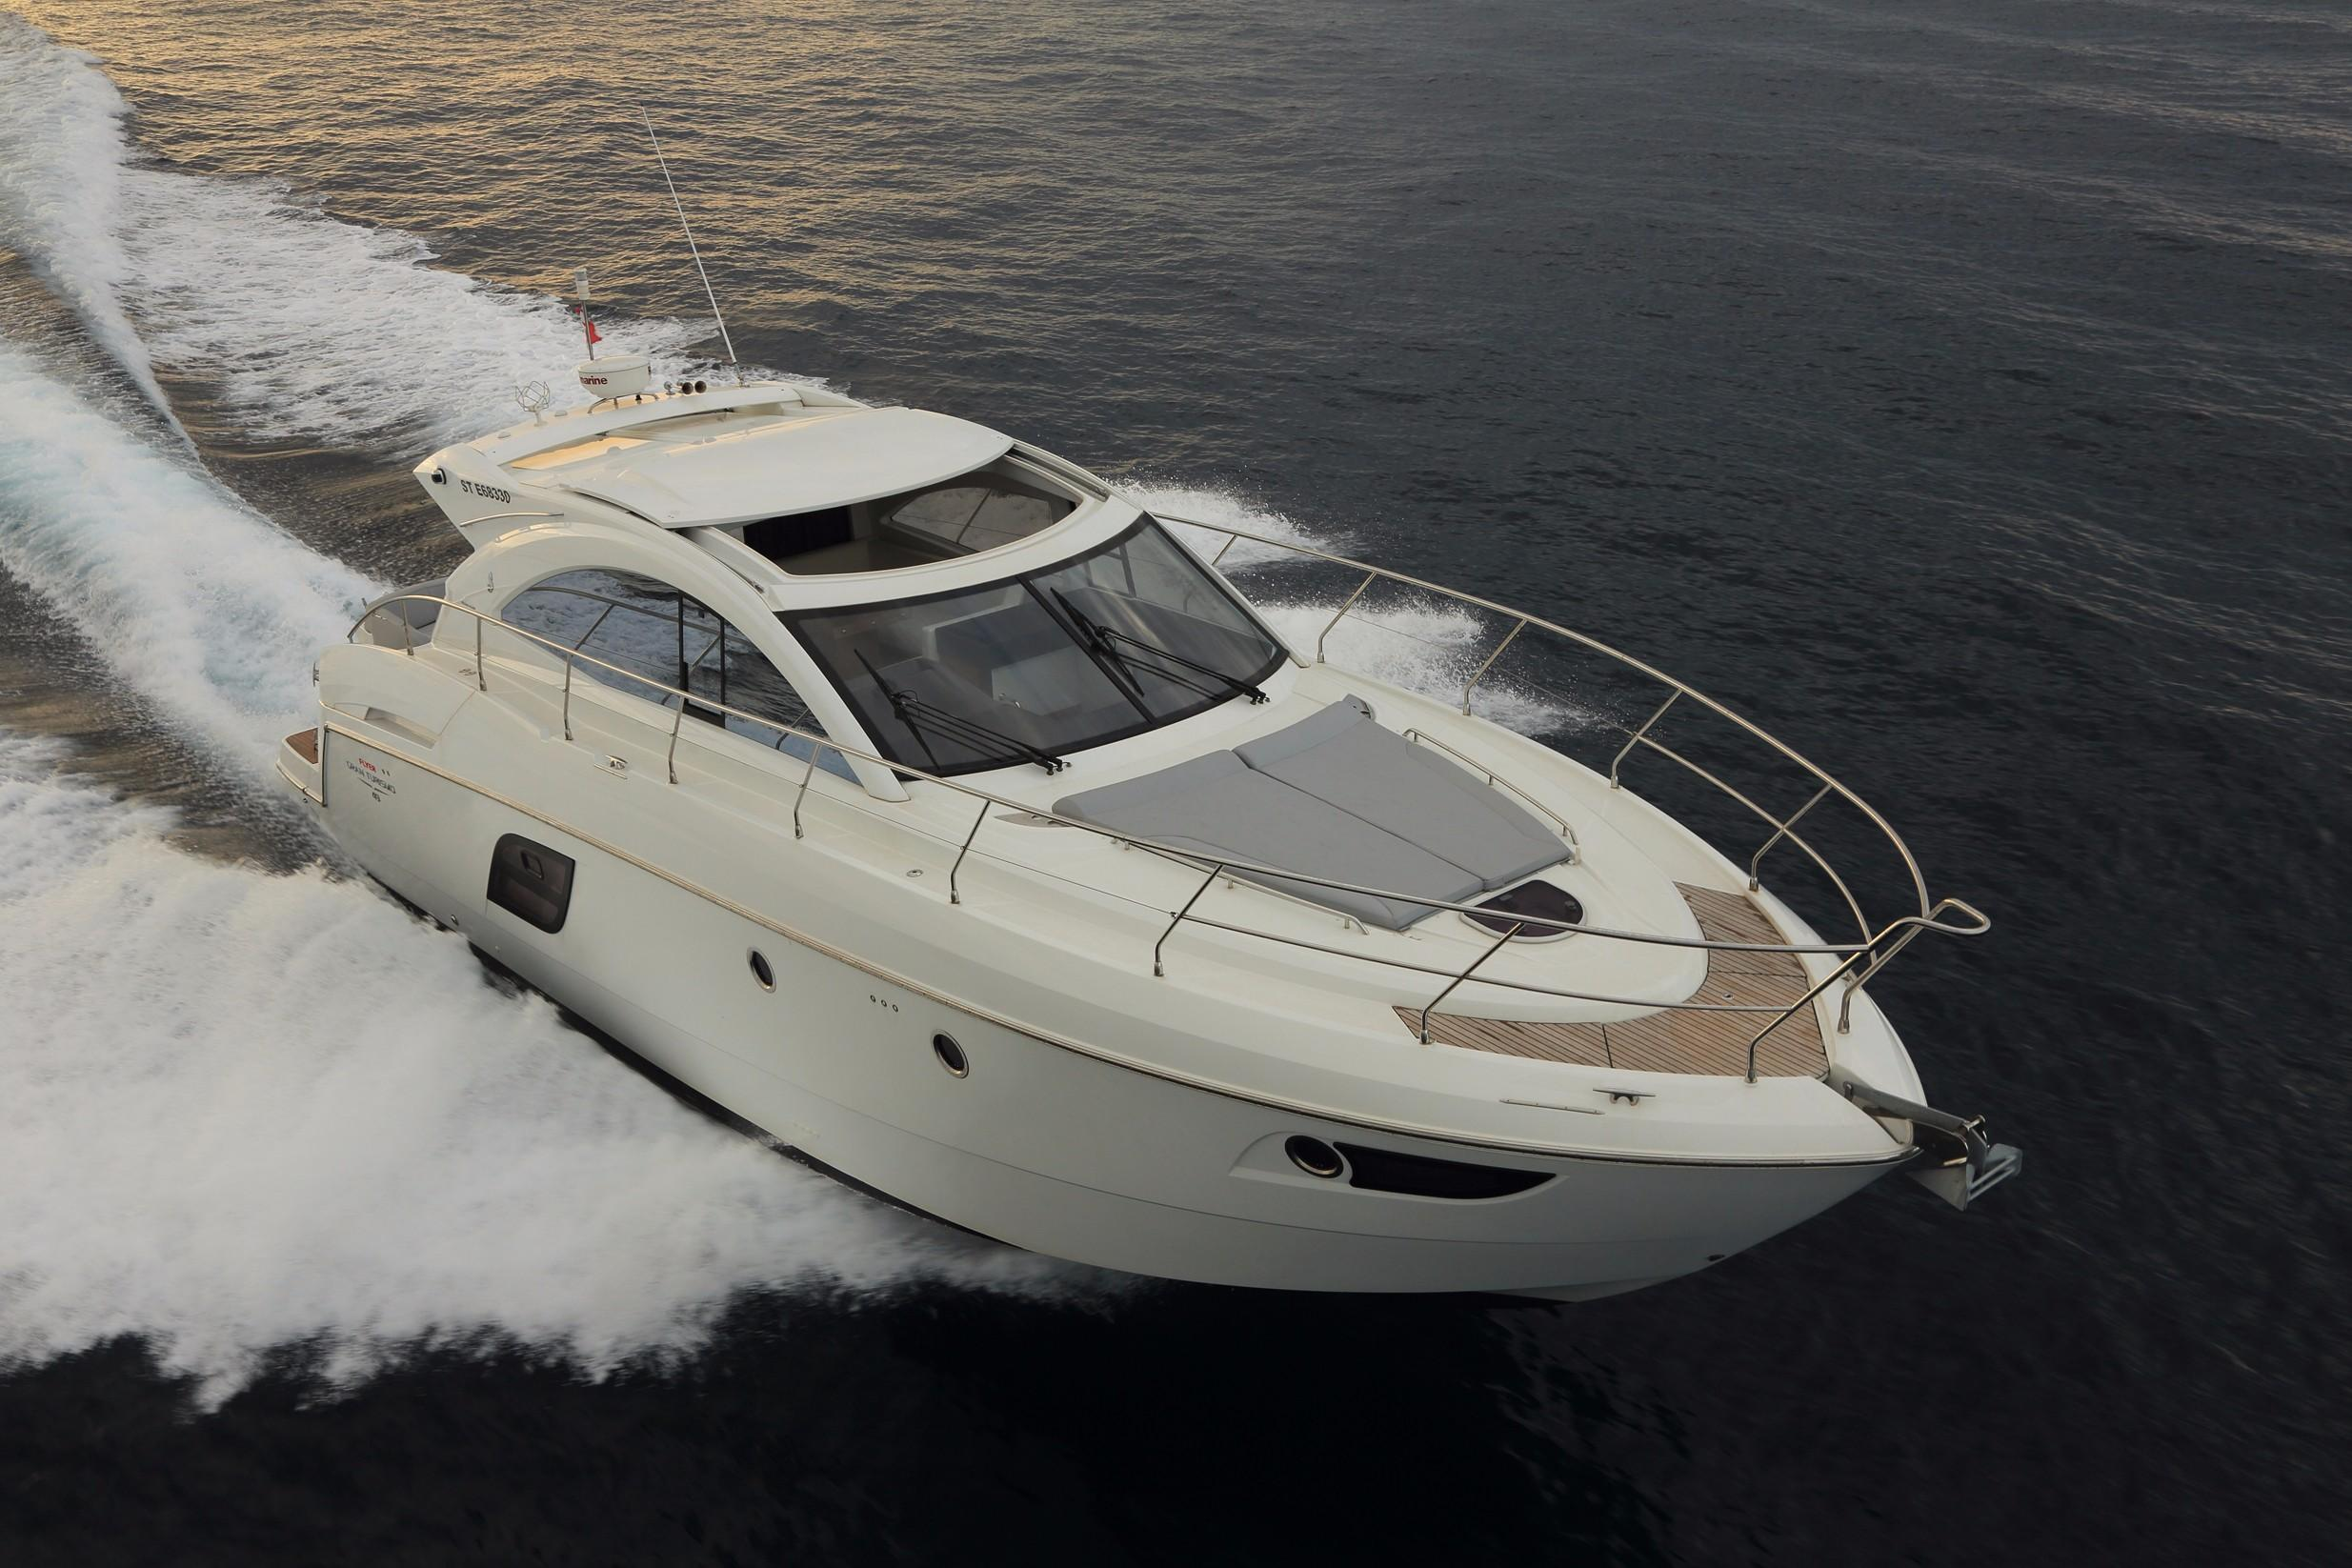 Yacht for Sale: 49' Beneteau Gran Turismo 2014